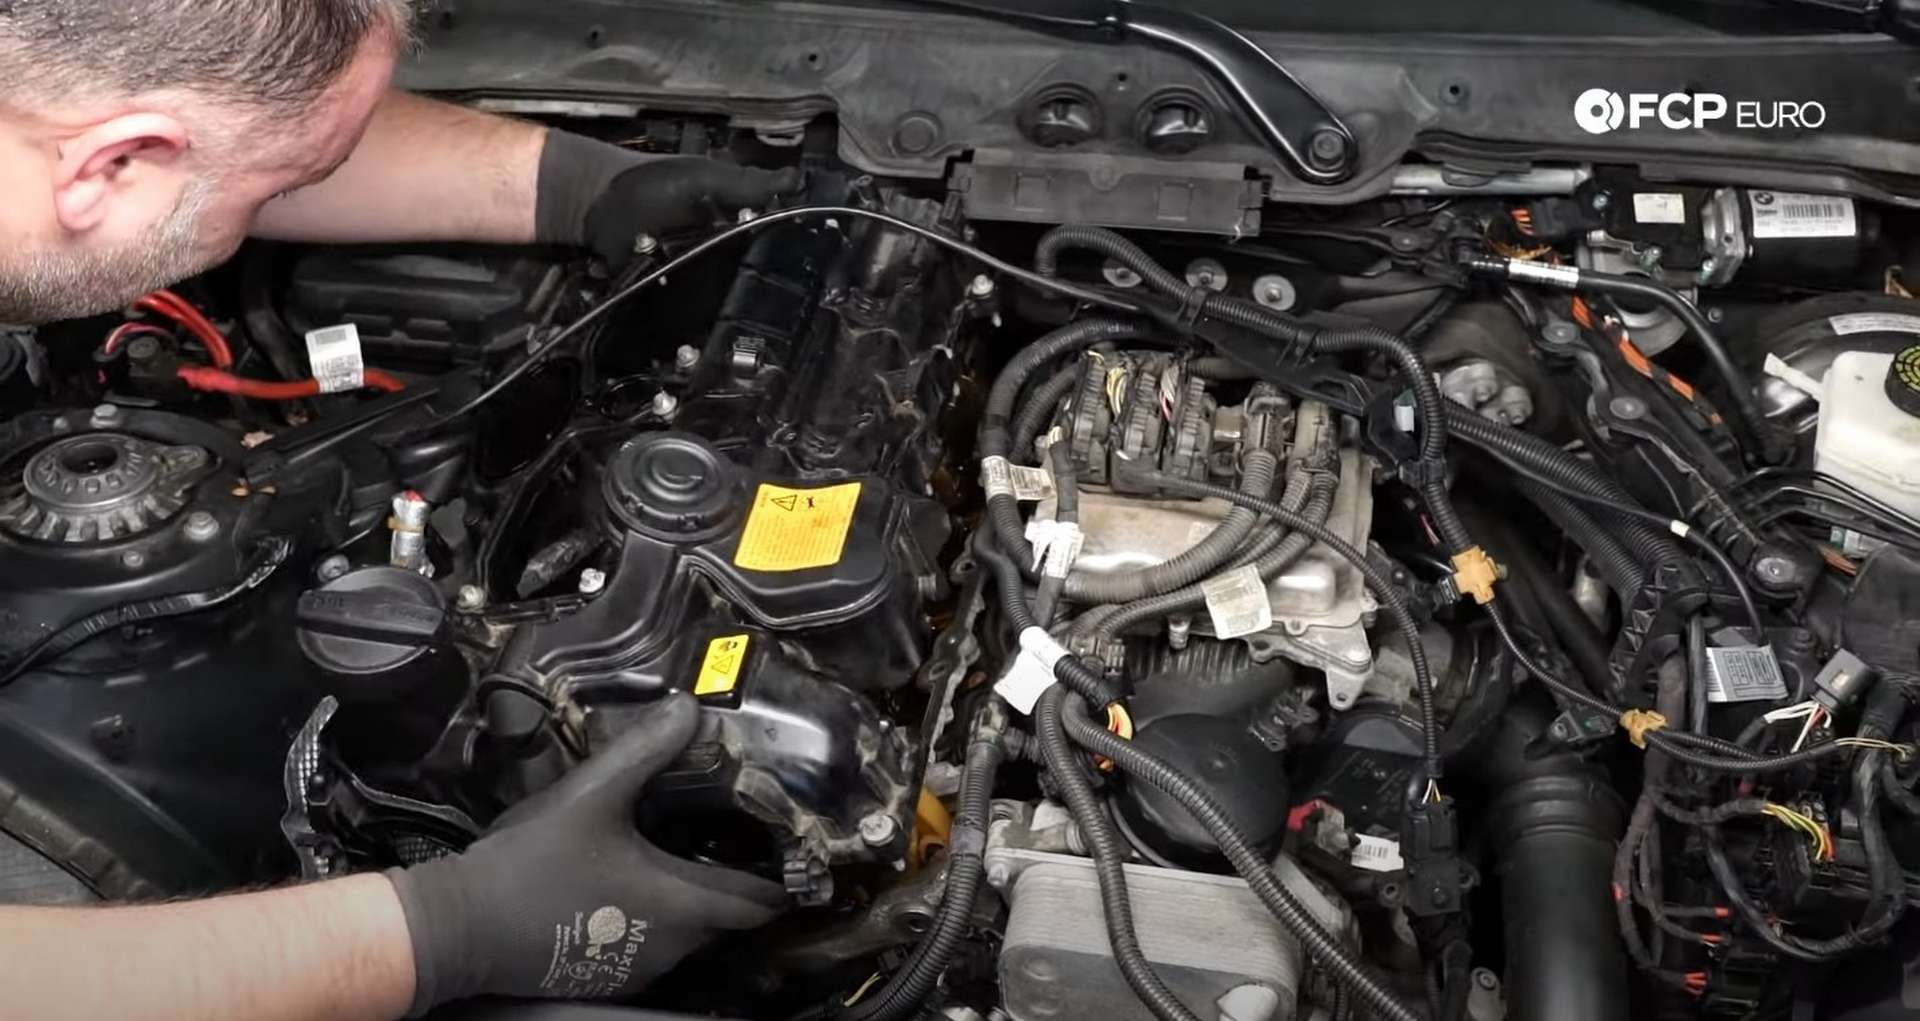 27-DIY-BMW-F30-Valve-Cover-Replacement_Replacing-Valve-Cover